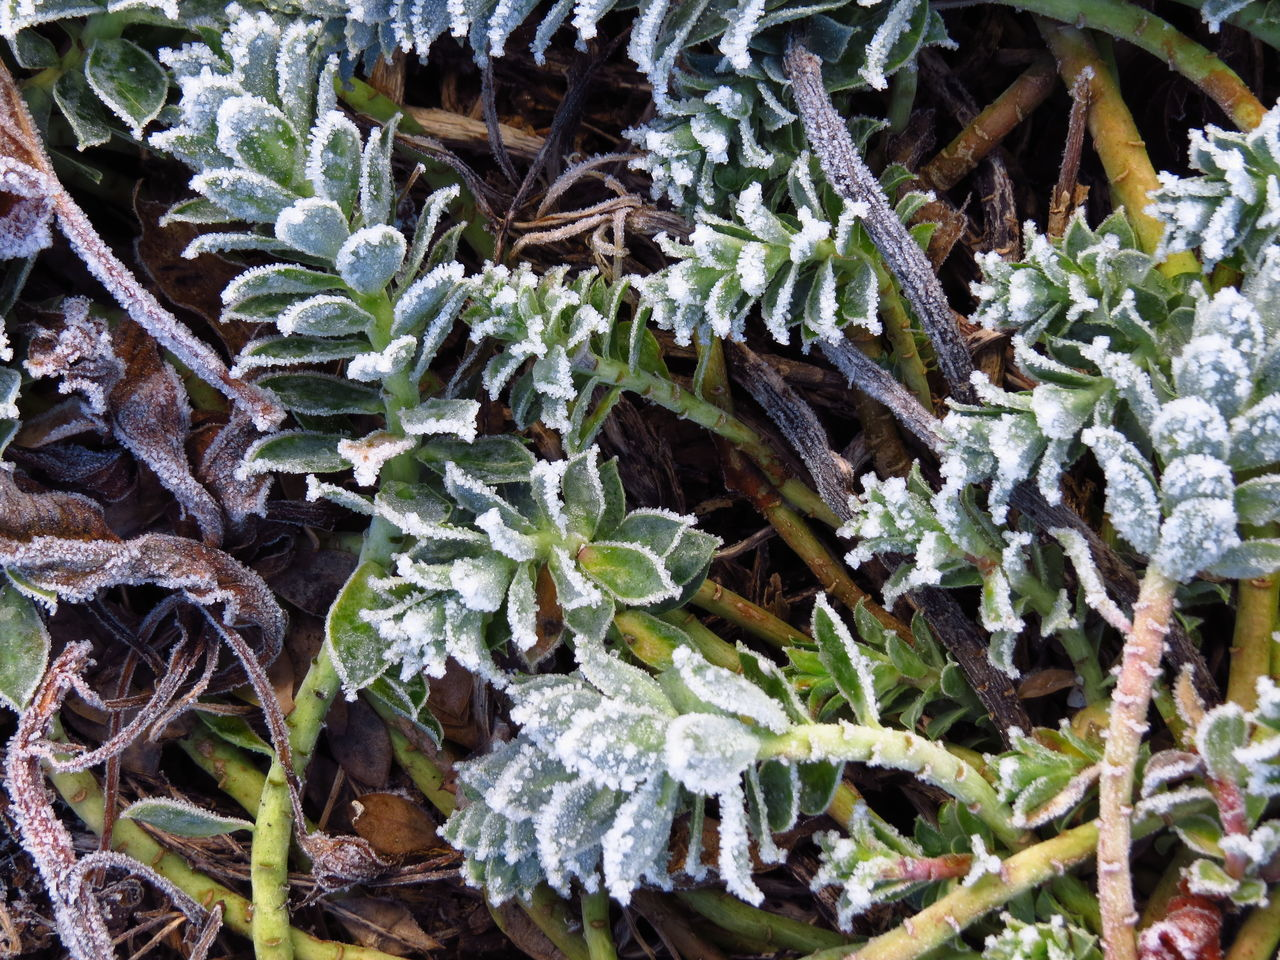 Cold Cold Days Cold Temperature Cold Weather Foliage Frost Frosted Frosted Nature Frosty Frosty Mornings Frozen Frozen Nature Hoar Frost Hoarfrost Plant Rime White Frost Winter Winter Winter Scene Winter Scenery Winter Season Winter Wonderland Winter_collection Wintertime